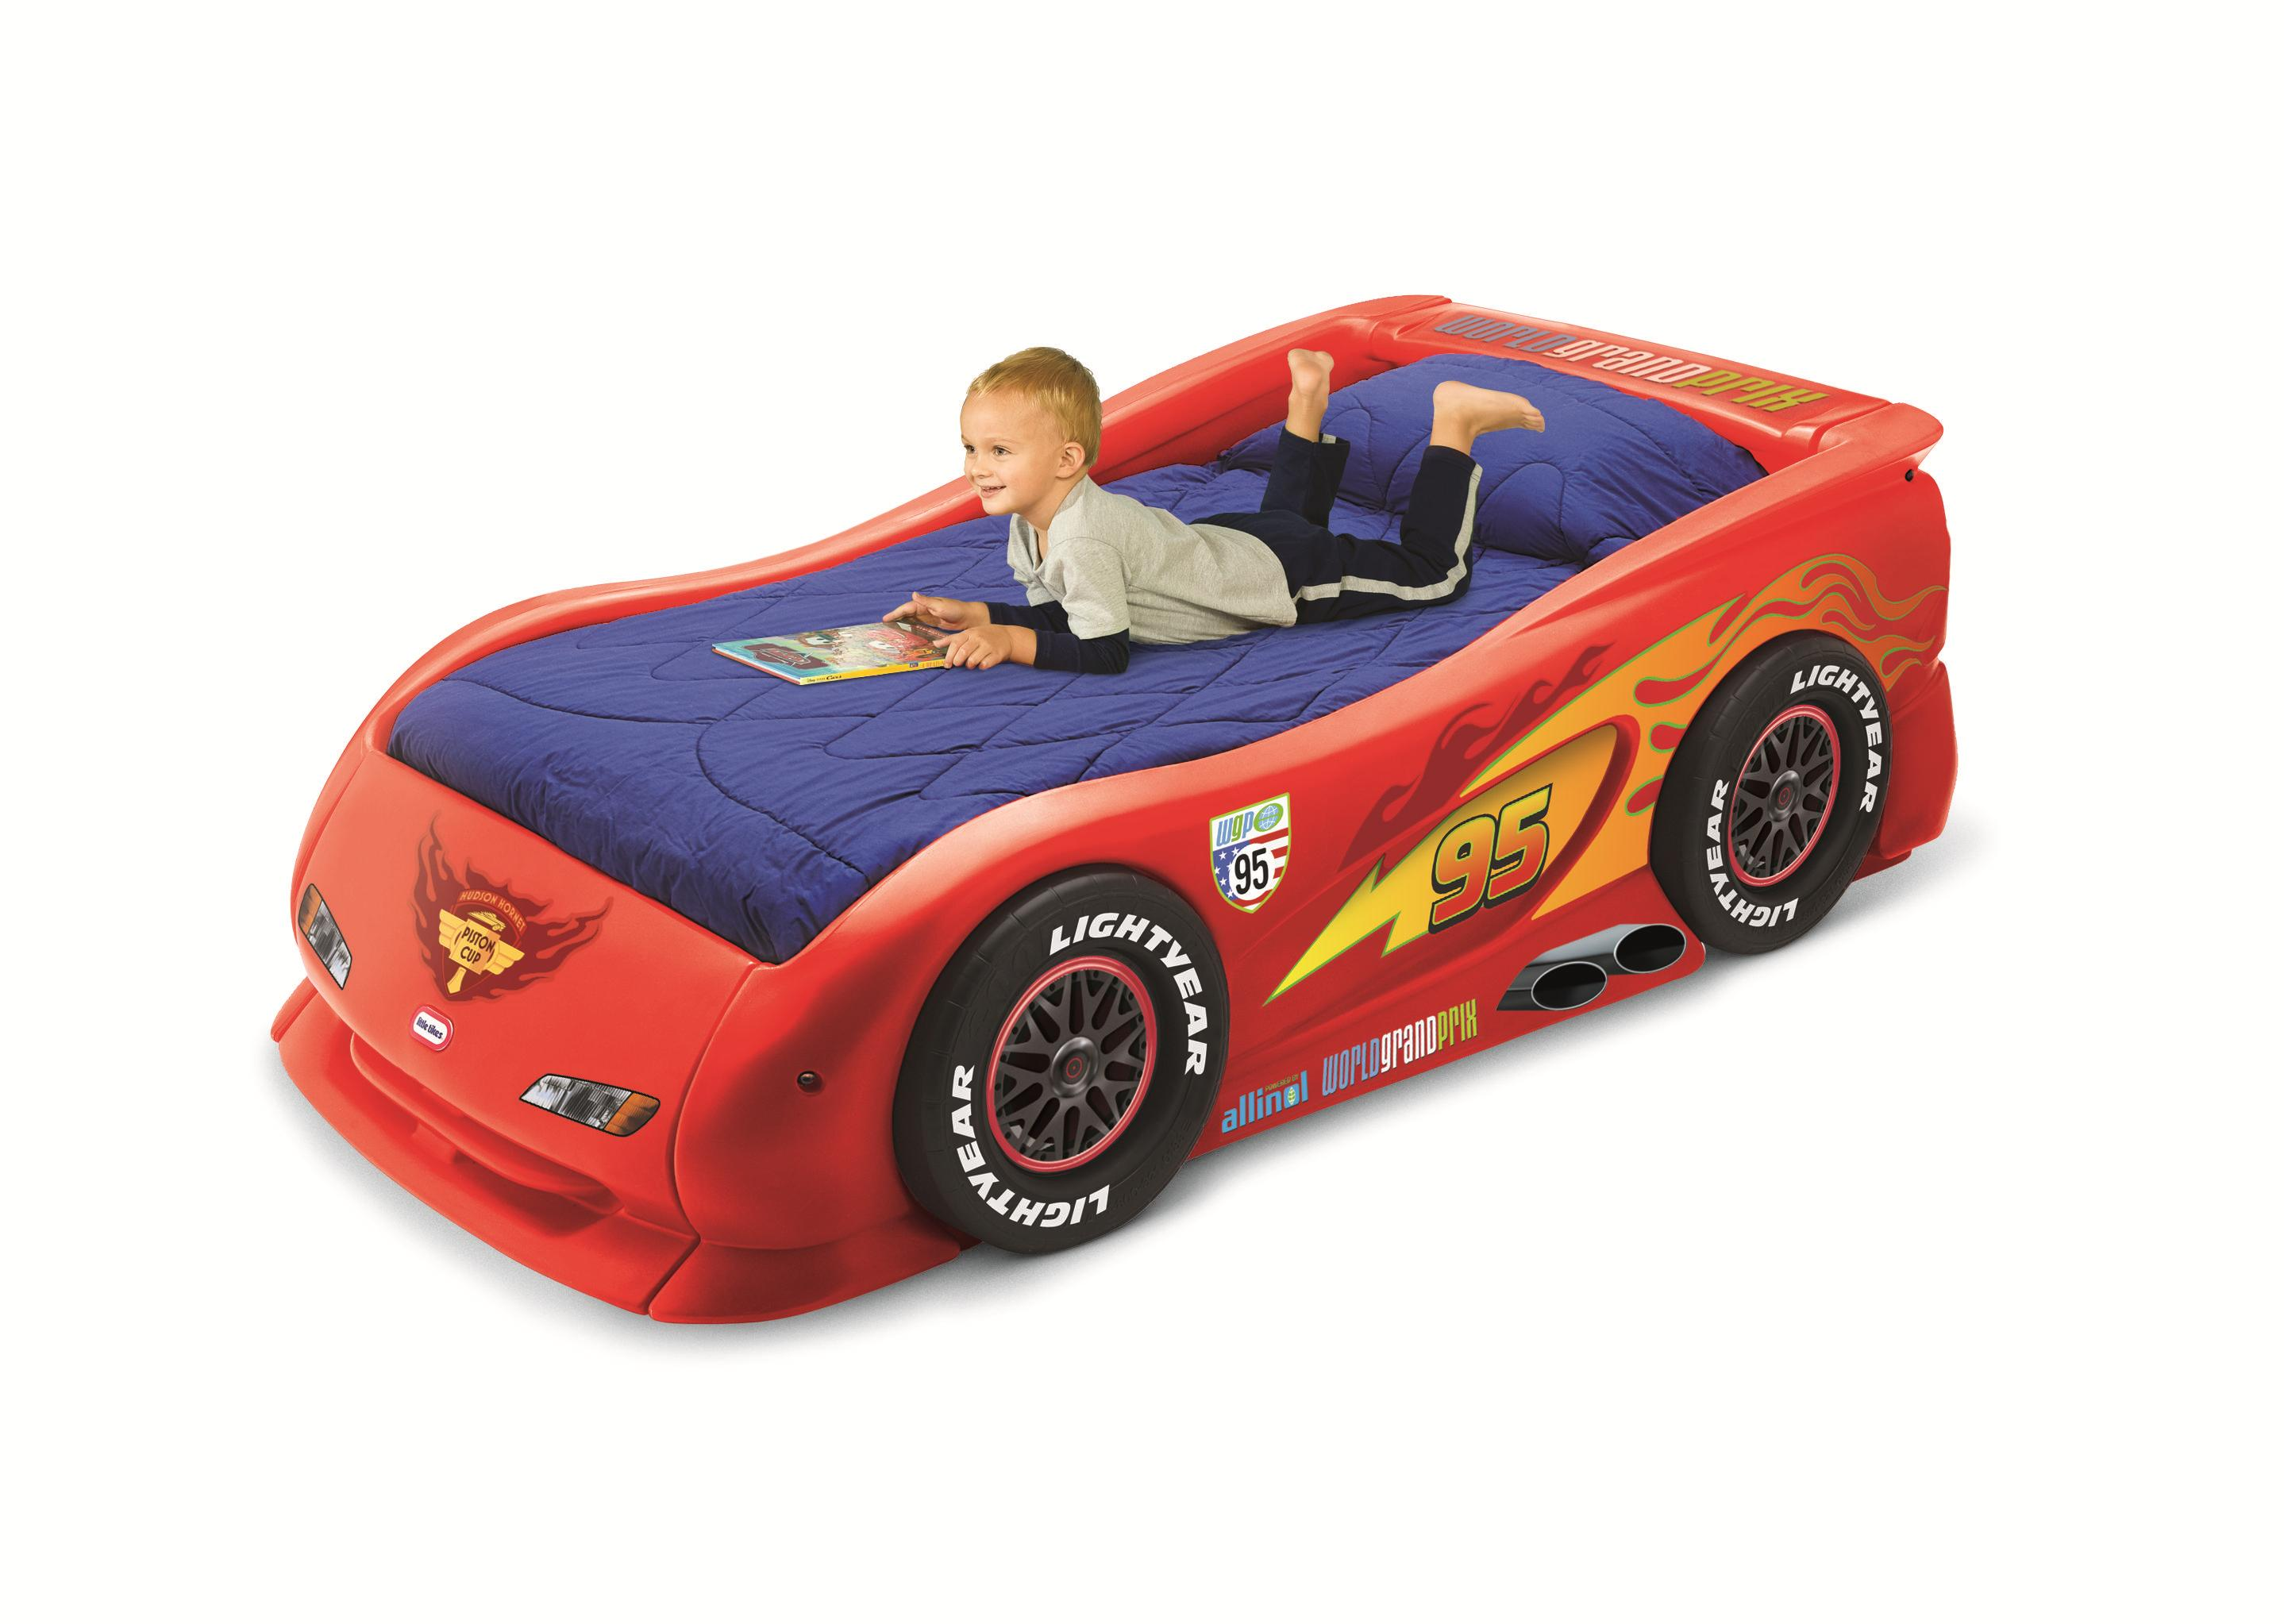 Little Tikes Blue Car Bed: Race Car Bed For Toddlers